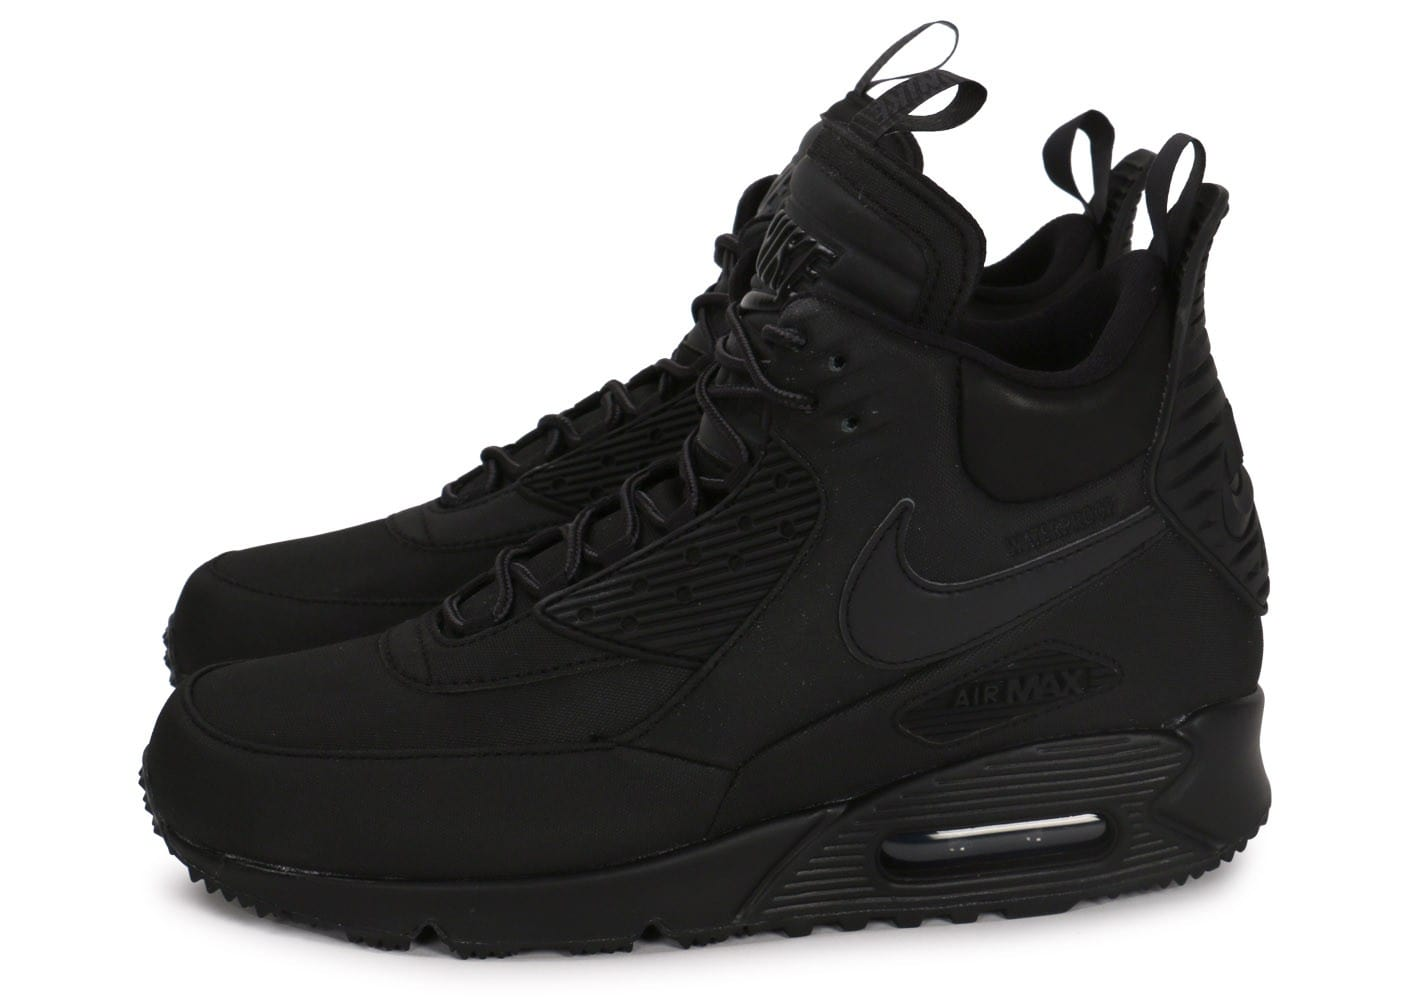 Nike Baskets montantes Air Max 95 Sneakerboot Noir